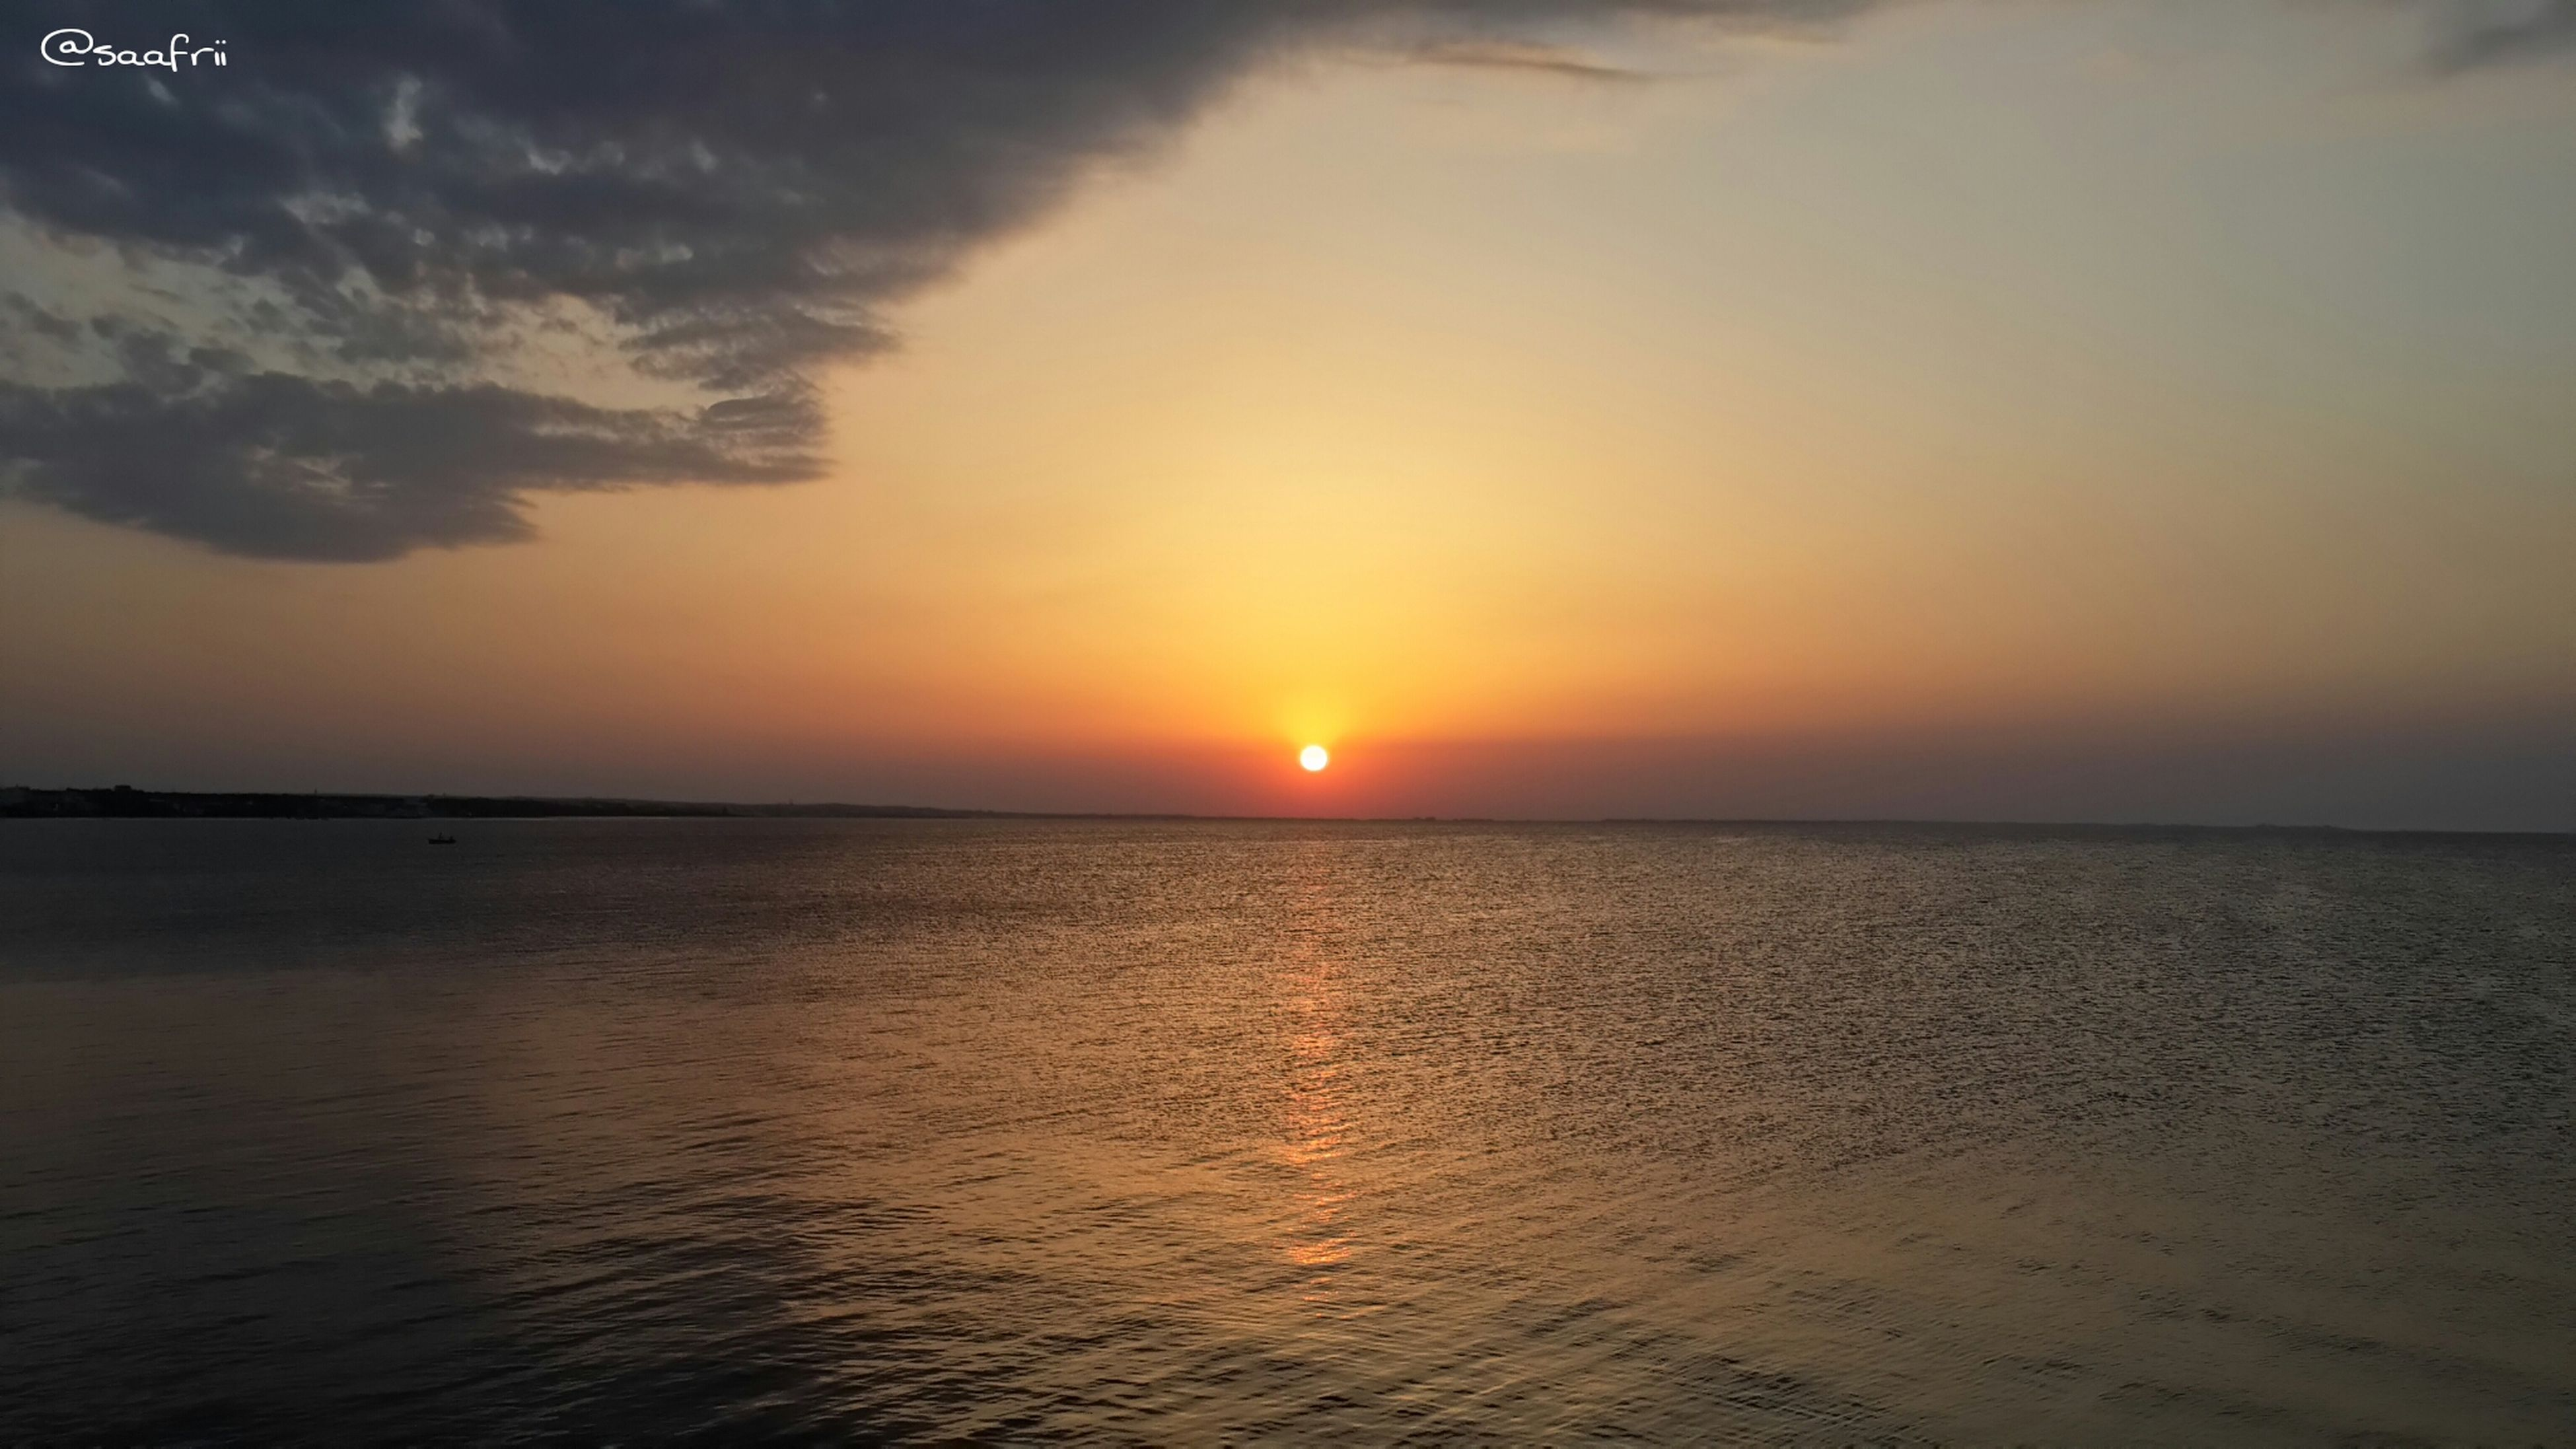 sunset, sea, water, tranquil scene, scenics, horizon over water, tranquility, beauty in nature, sun, sky, idyllic, nature, waterfront, orange color, reflection, rippled, seascape, outdoors, sunlight, no people